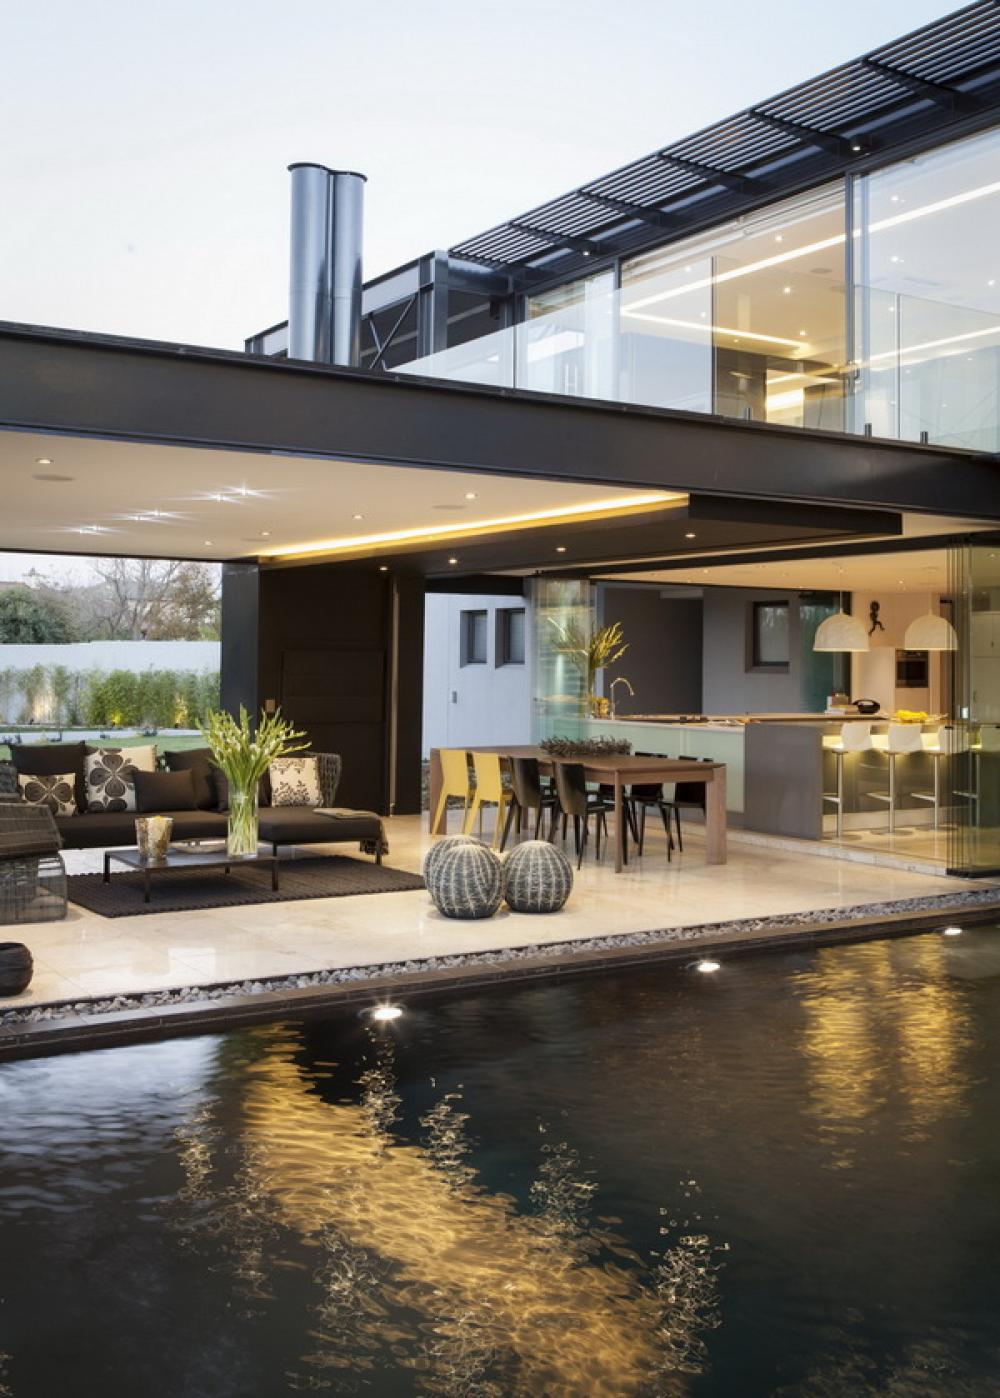 fancy-and-elegant-outdoor-room-home-design-for-living-area-and-dining-area-next-to-the-wide-pool